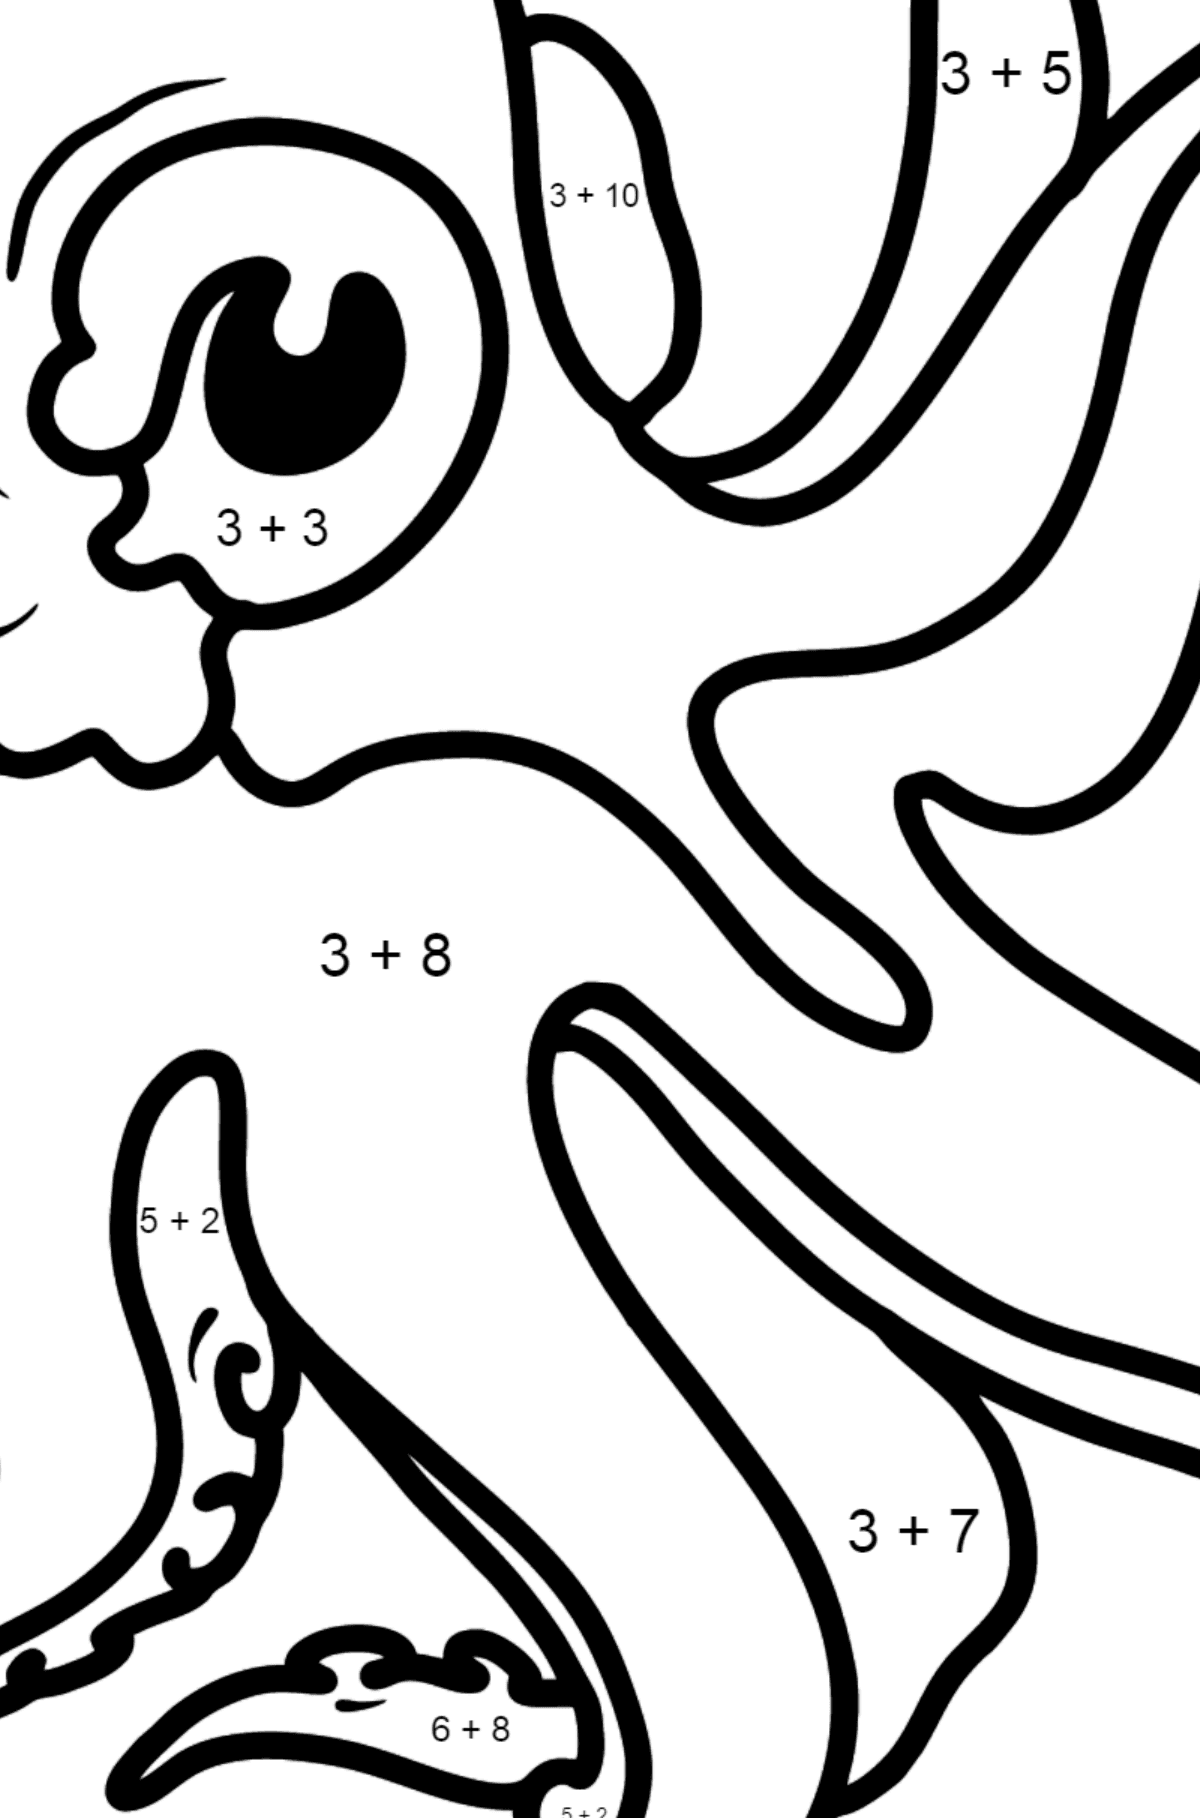 Octopus coloring page - Math Coloring - Addition for Kids